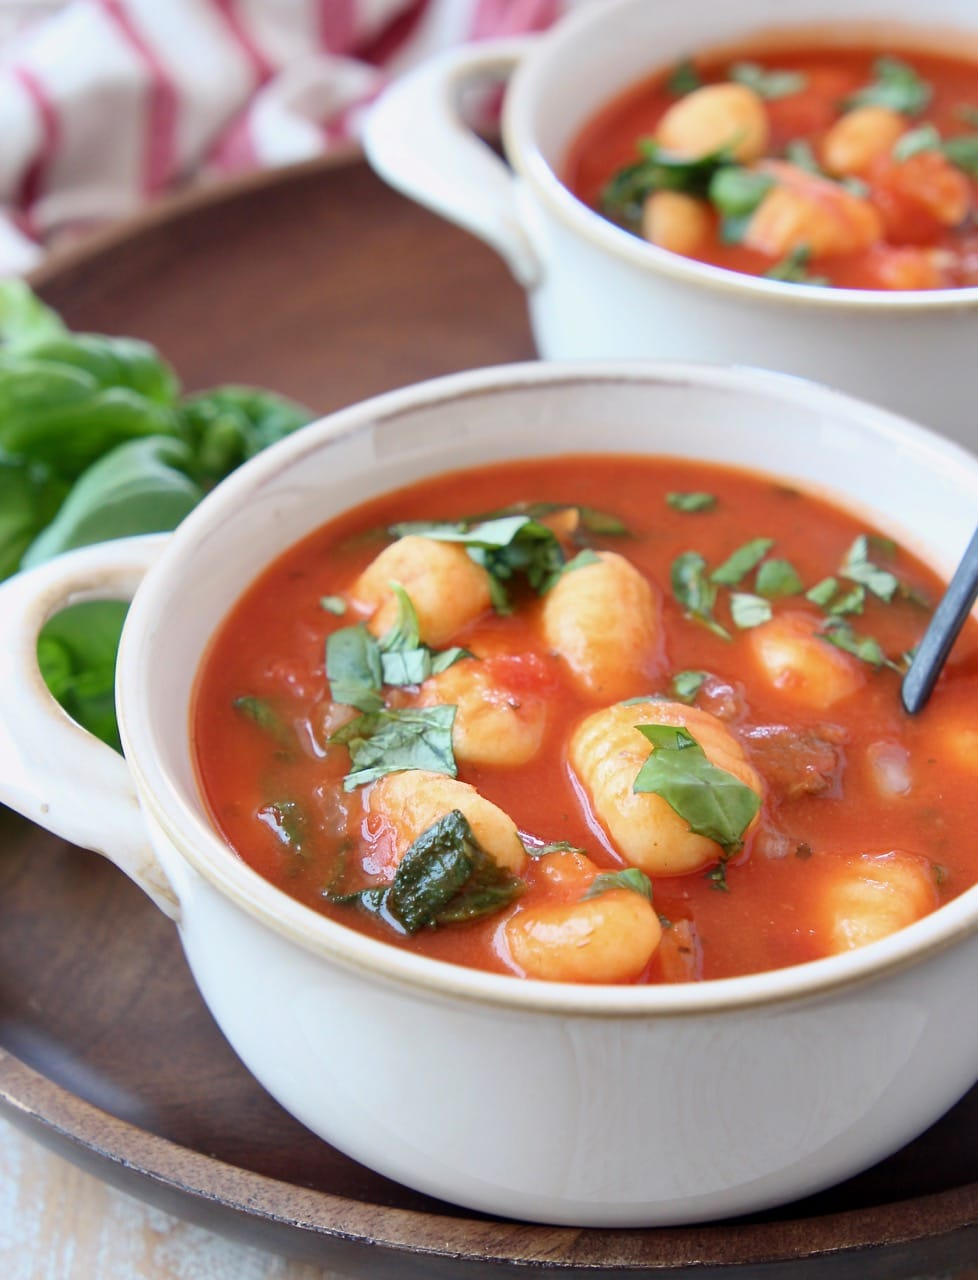 Tomato basil gnocchi soup in white bowls with spoons